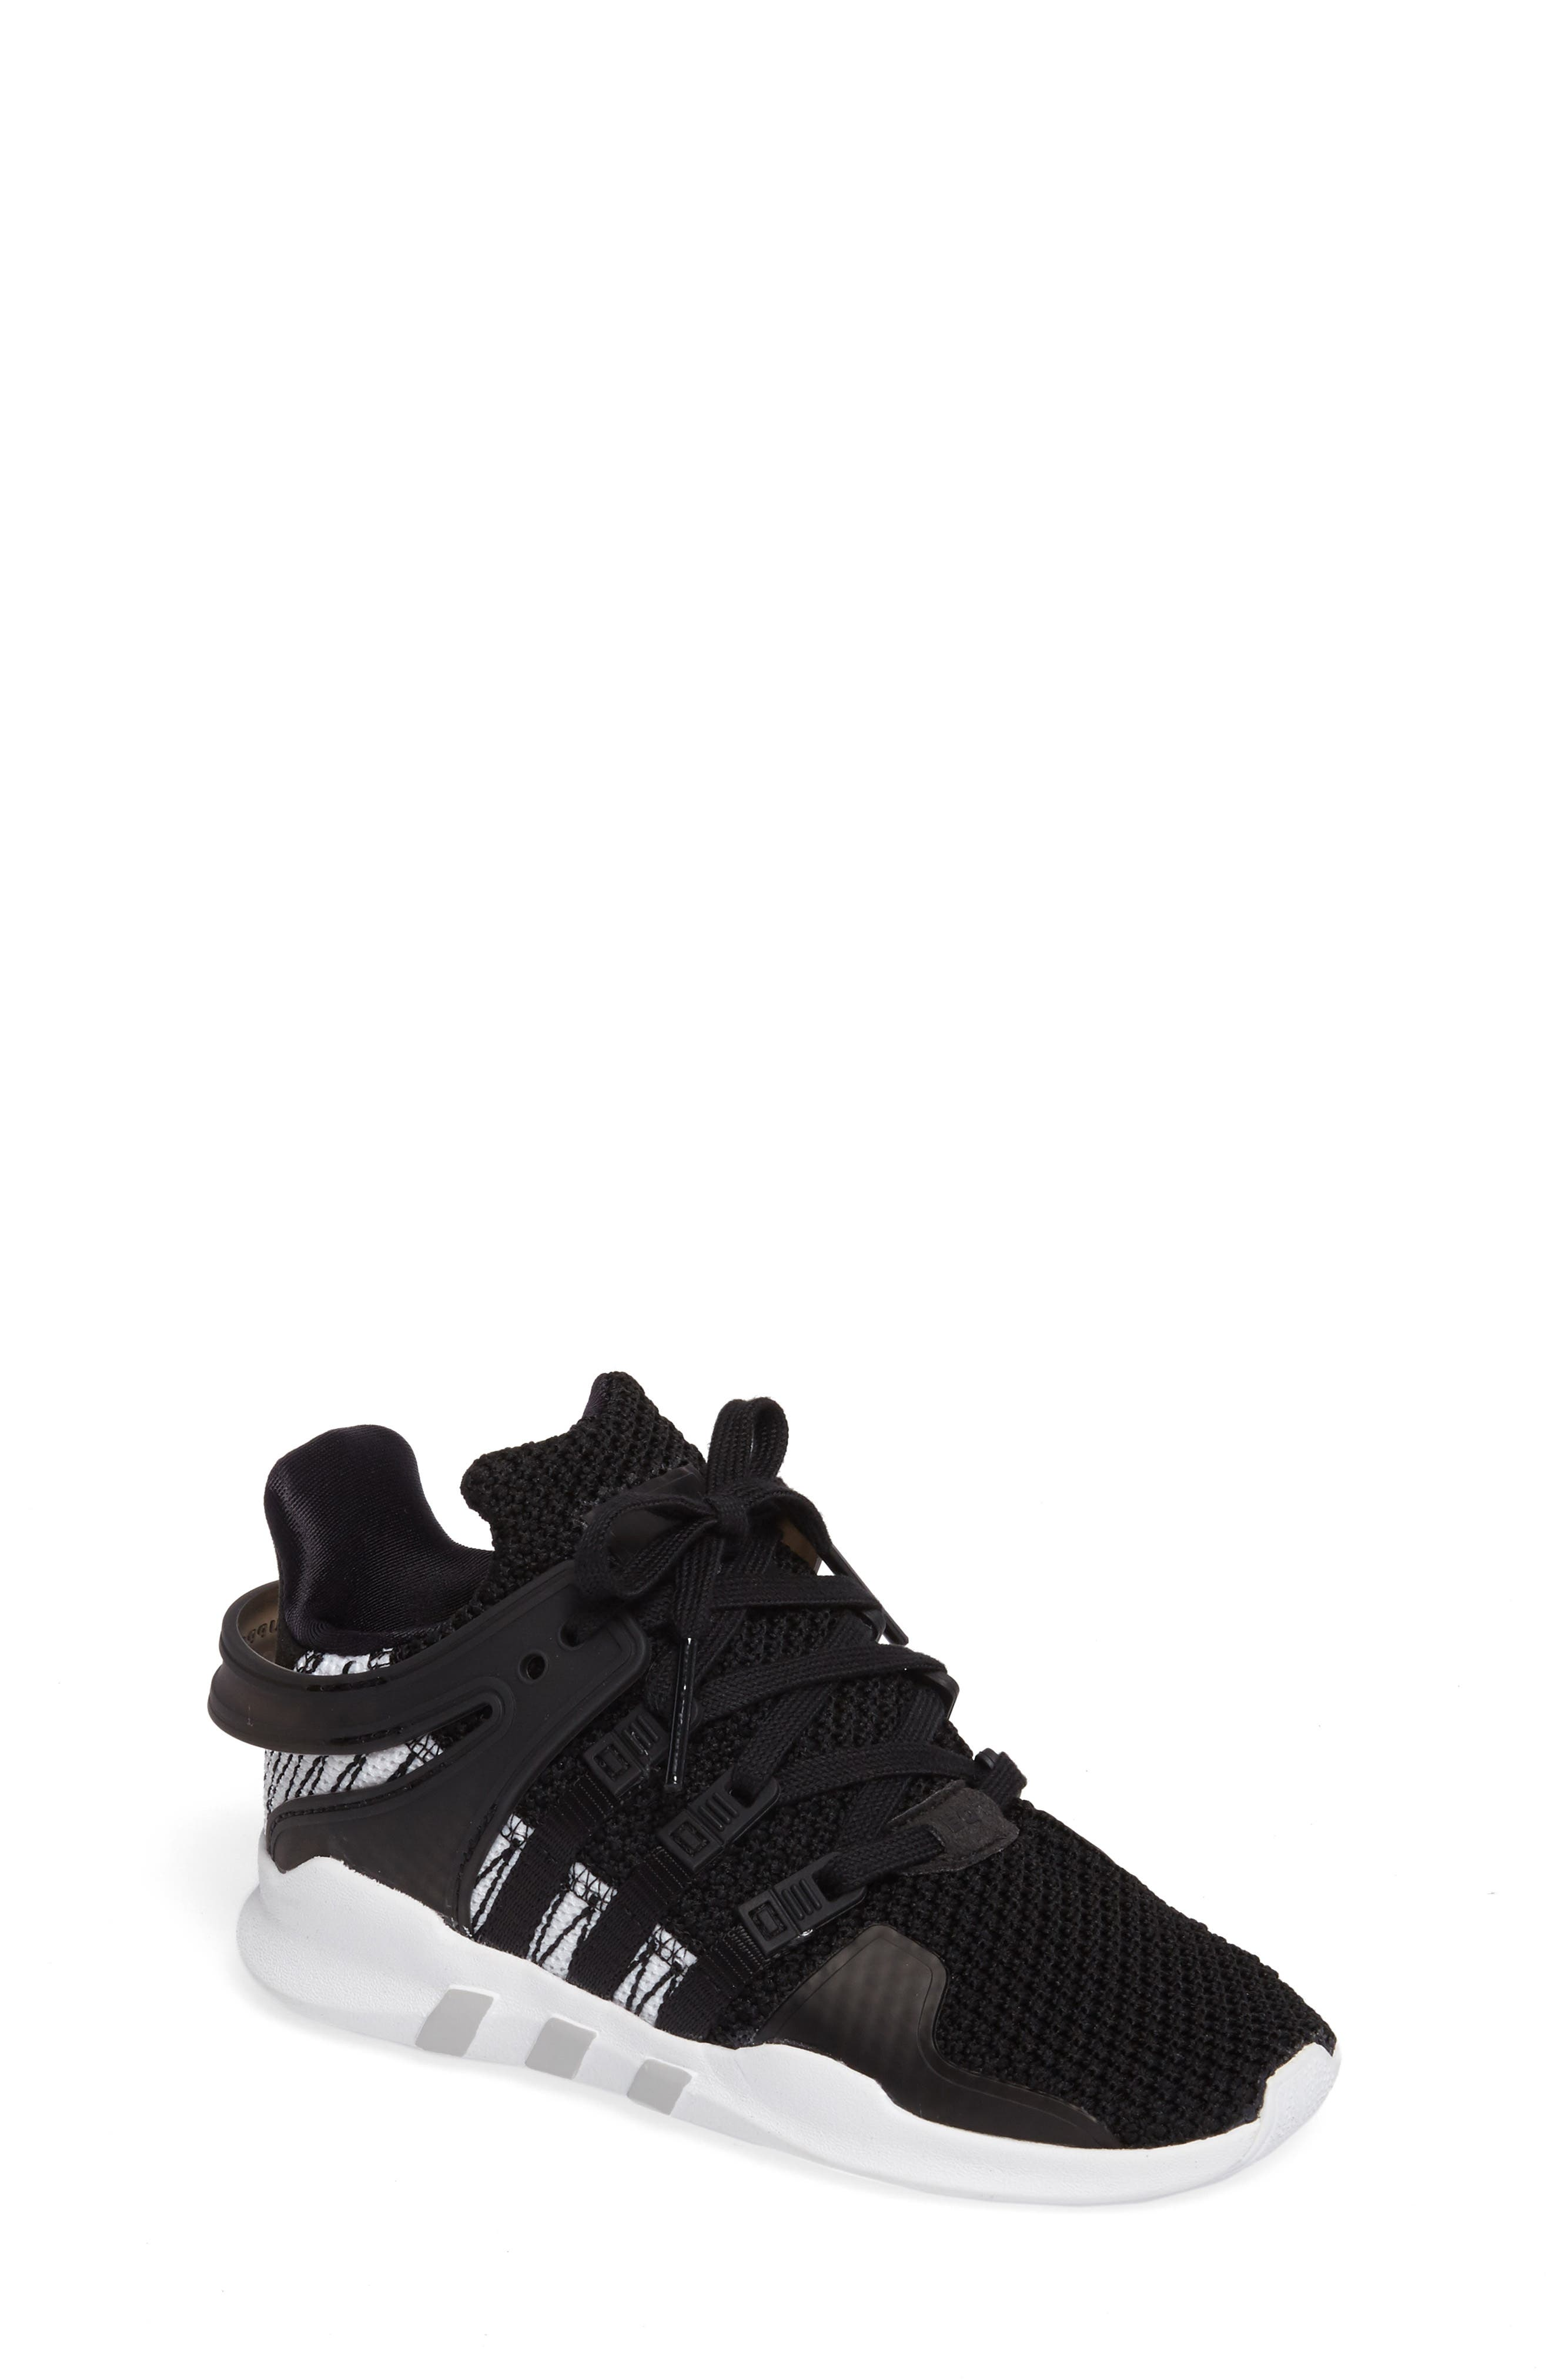 Alternate Image 1 Selected - adidas EQT Support ADV I Sneaker (Baby, Walker & Toddler)